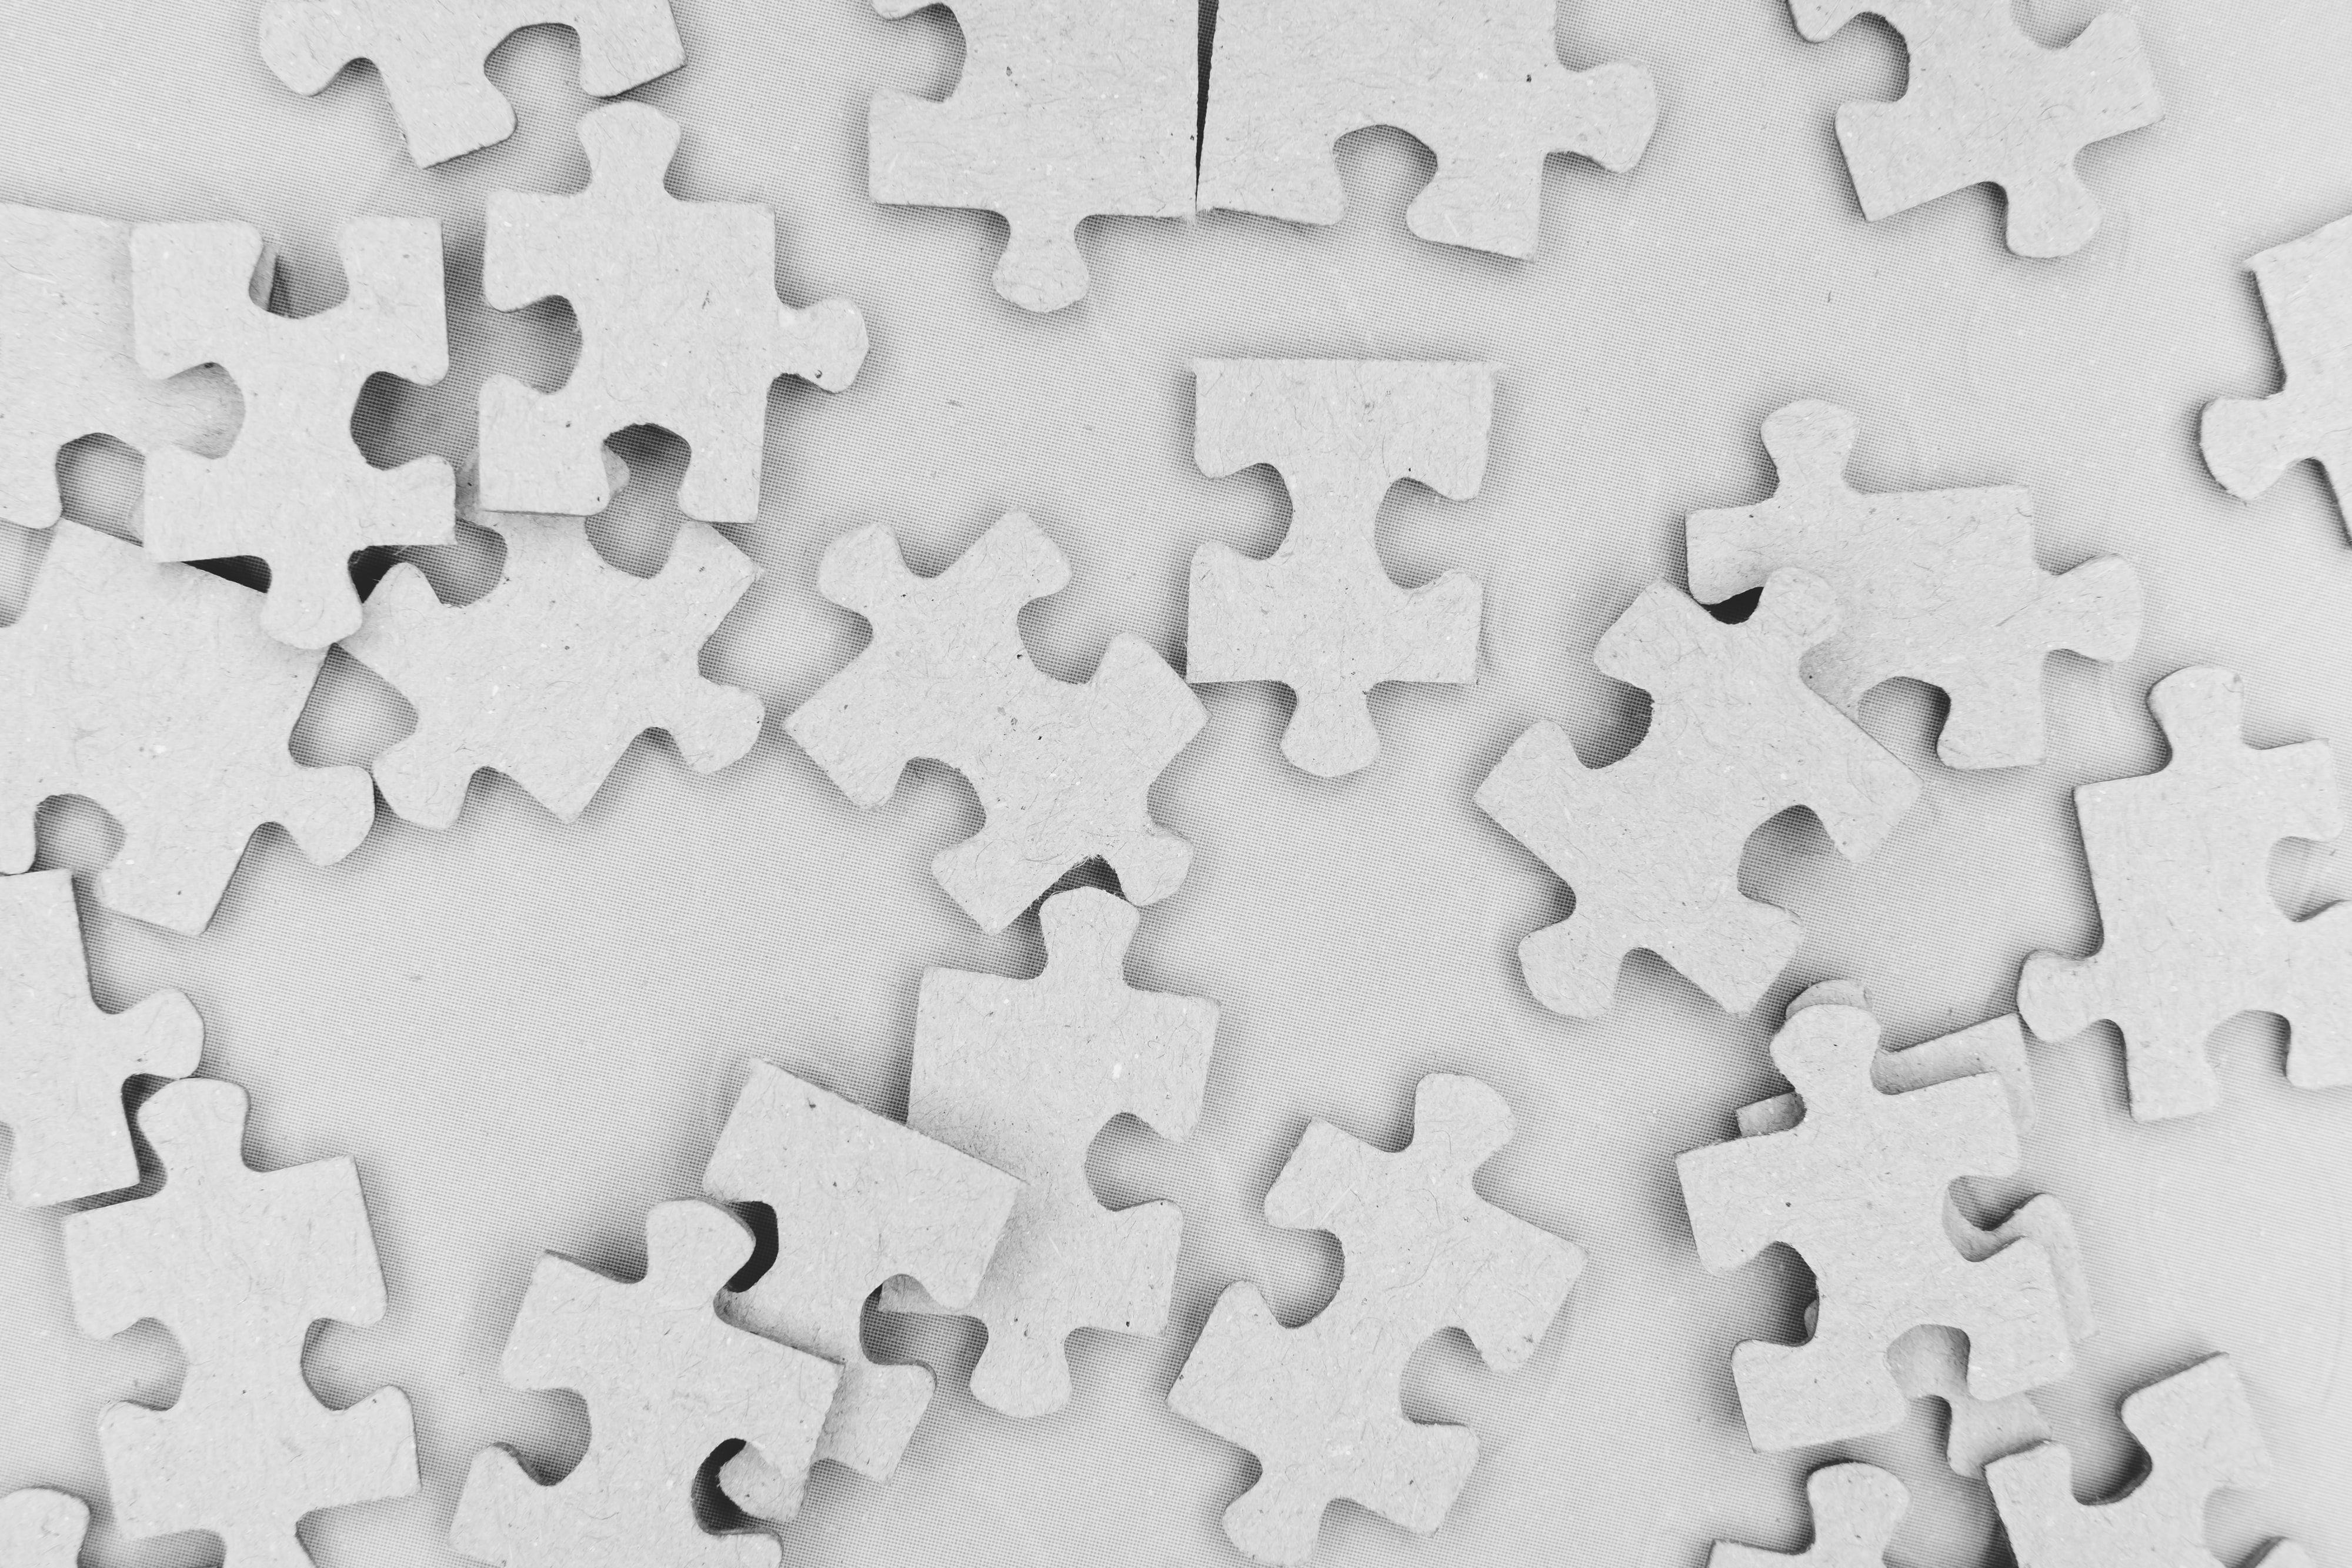 A series of blank puzzle pieces against a plain background